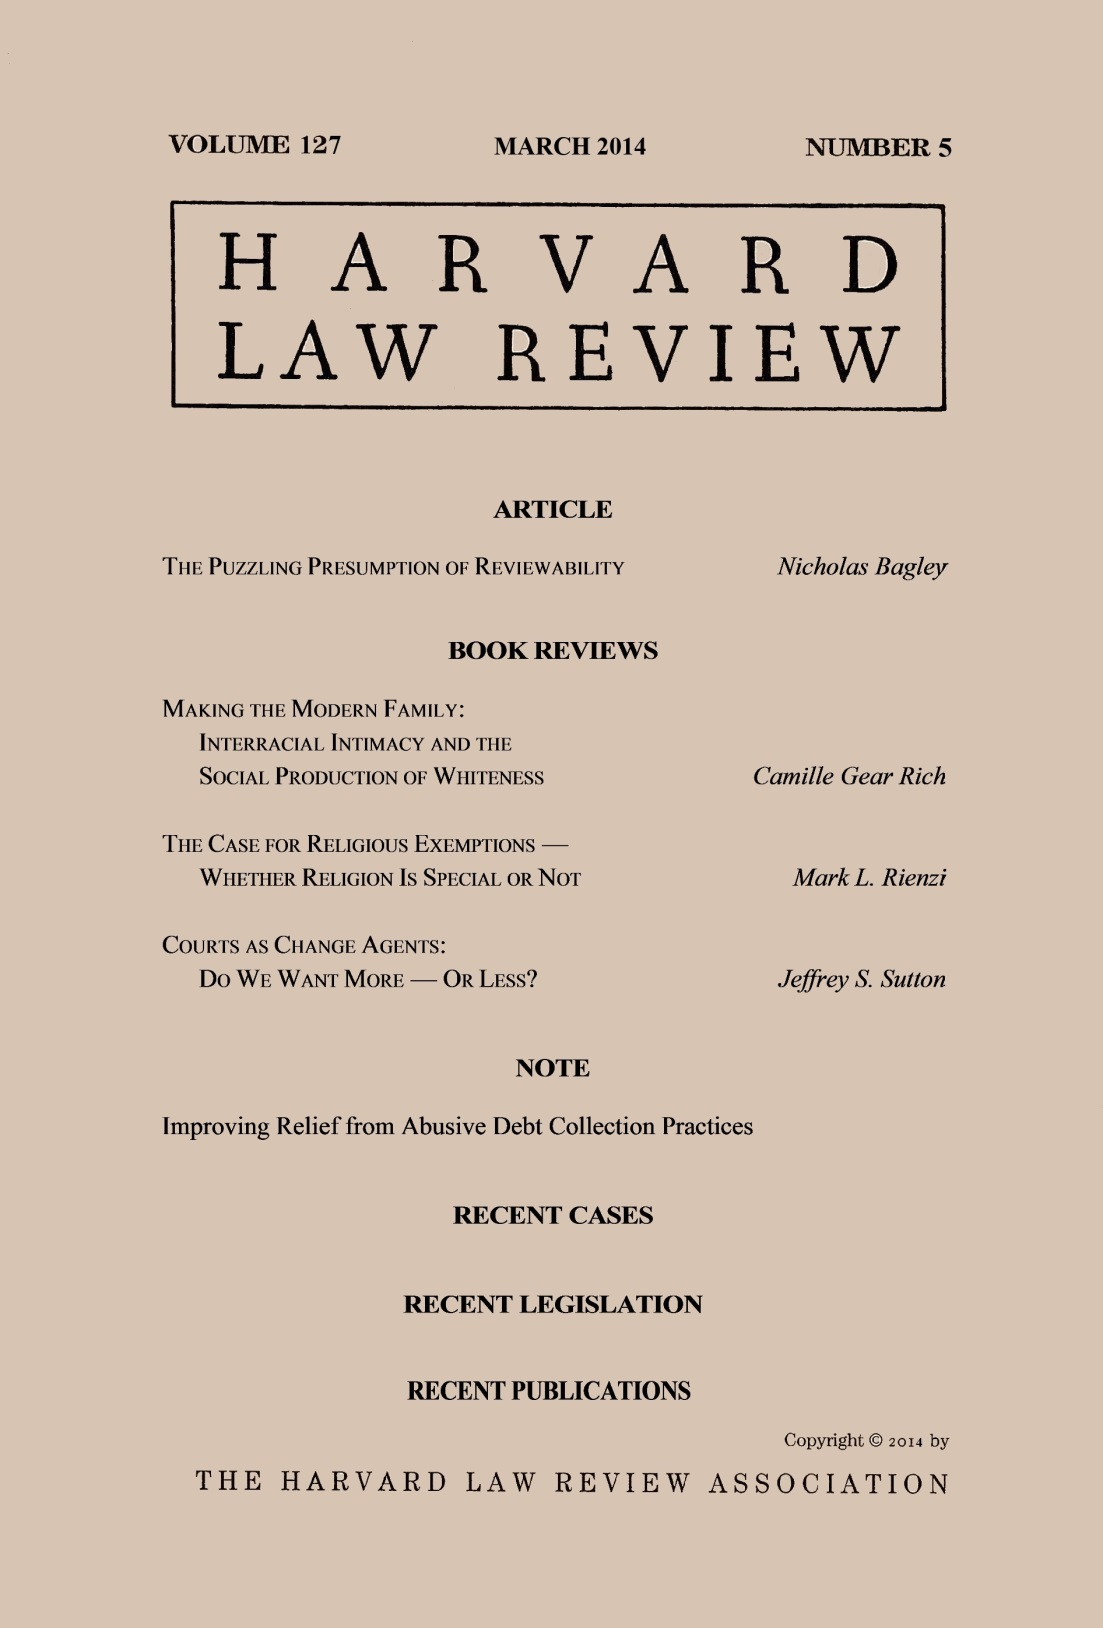 legal methods case law review Abstract the ability to read legal cases is one of the most essential skills for law  students aiming for success in their discipline  seattle university law review,  30, 603-649 retrieved on  handbook of interview research: context & method.